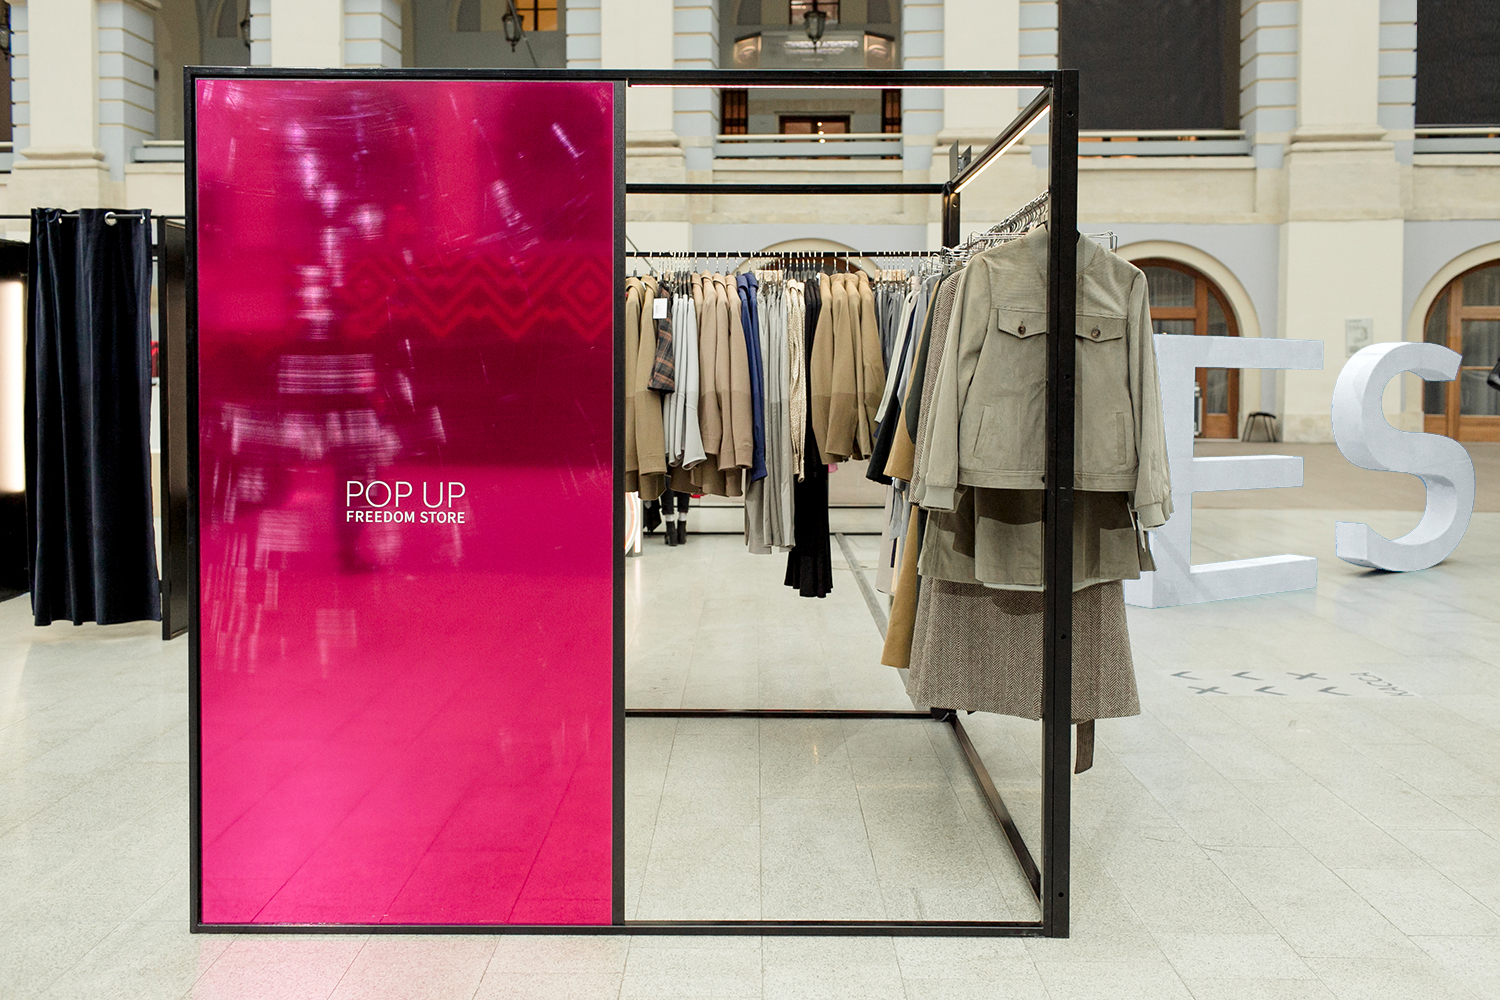 Save fashion pop up store 17 Pop-Up Store Success Stories You Can Learn From - Storefront